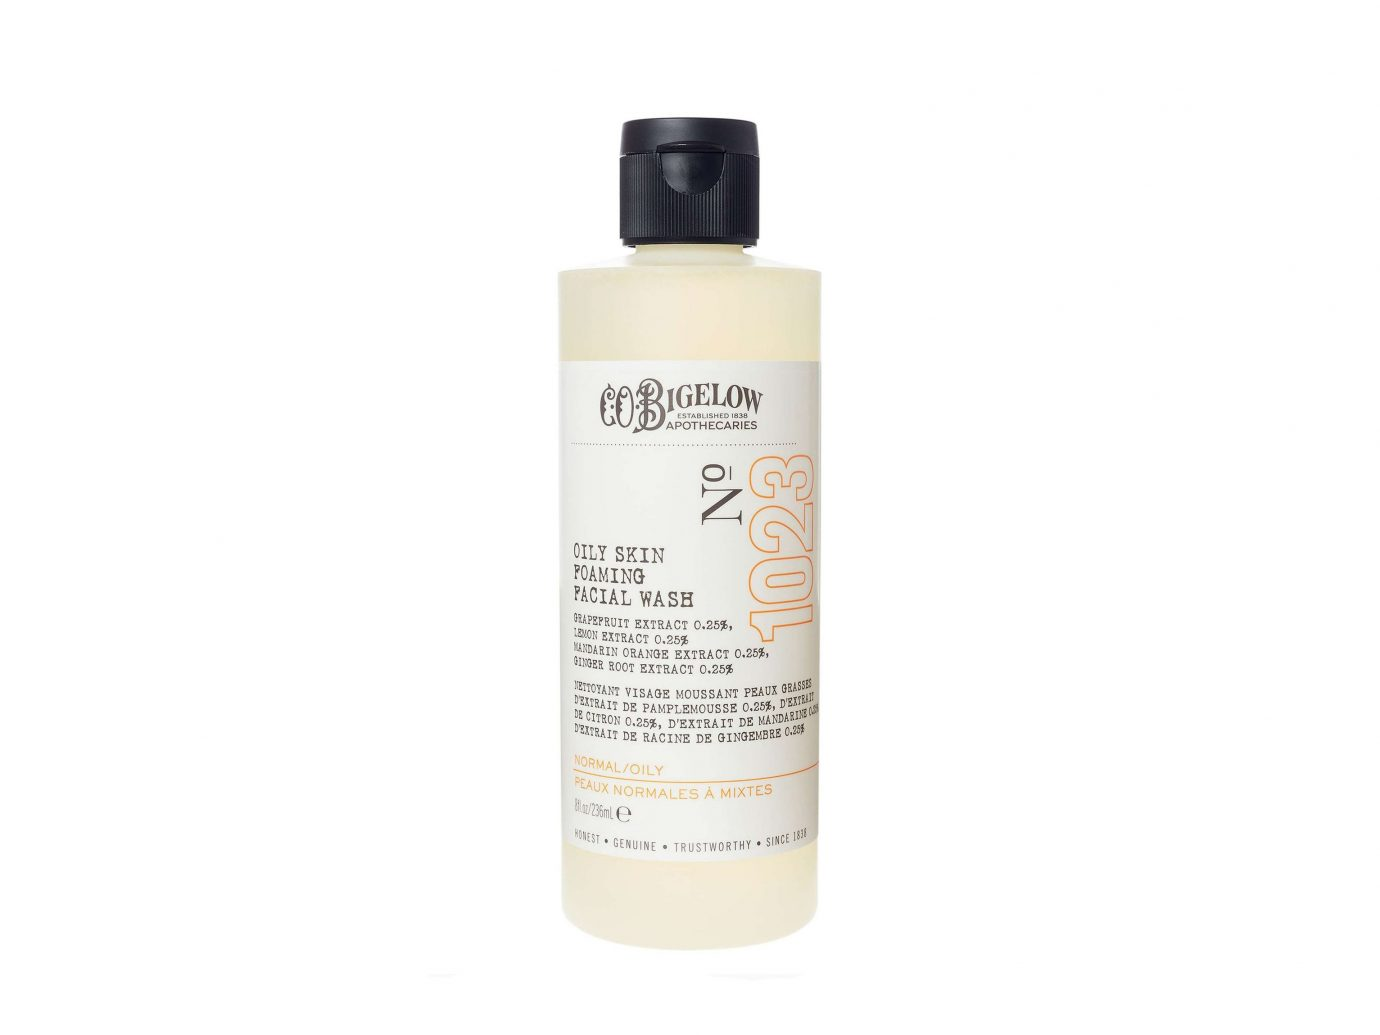 Health + Wellness Style + Design Travel Shop toiletry product lotion health & beauty liquid skin care body wash